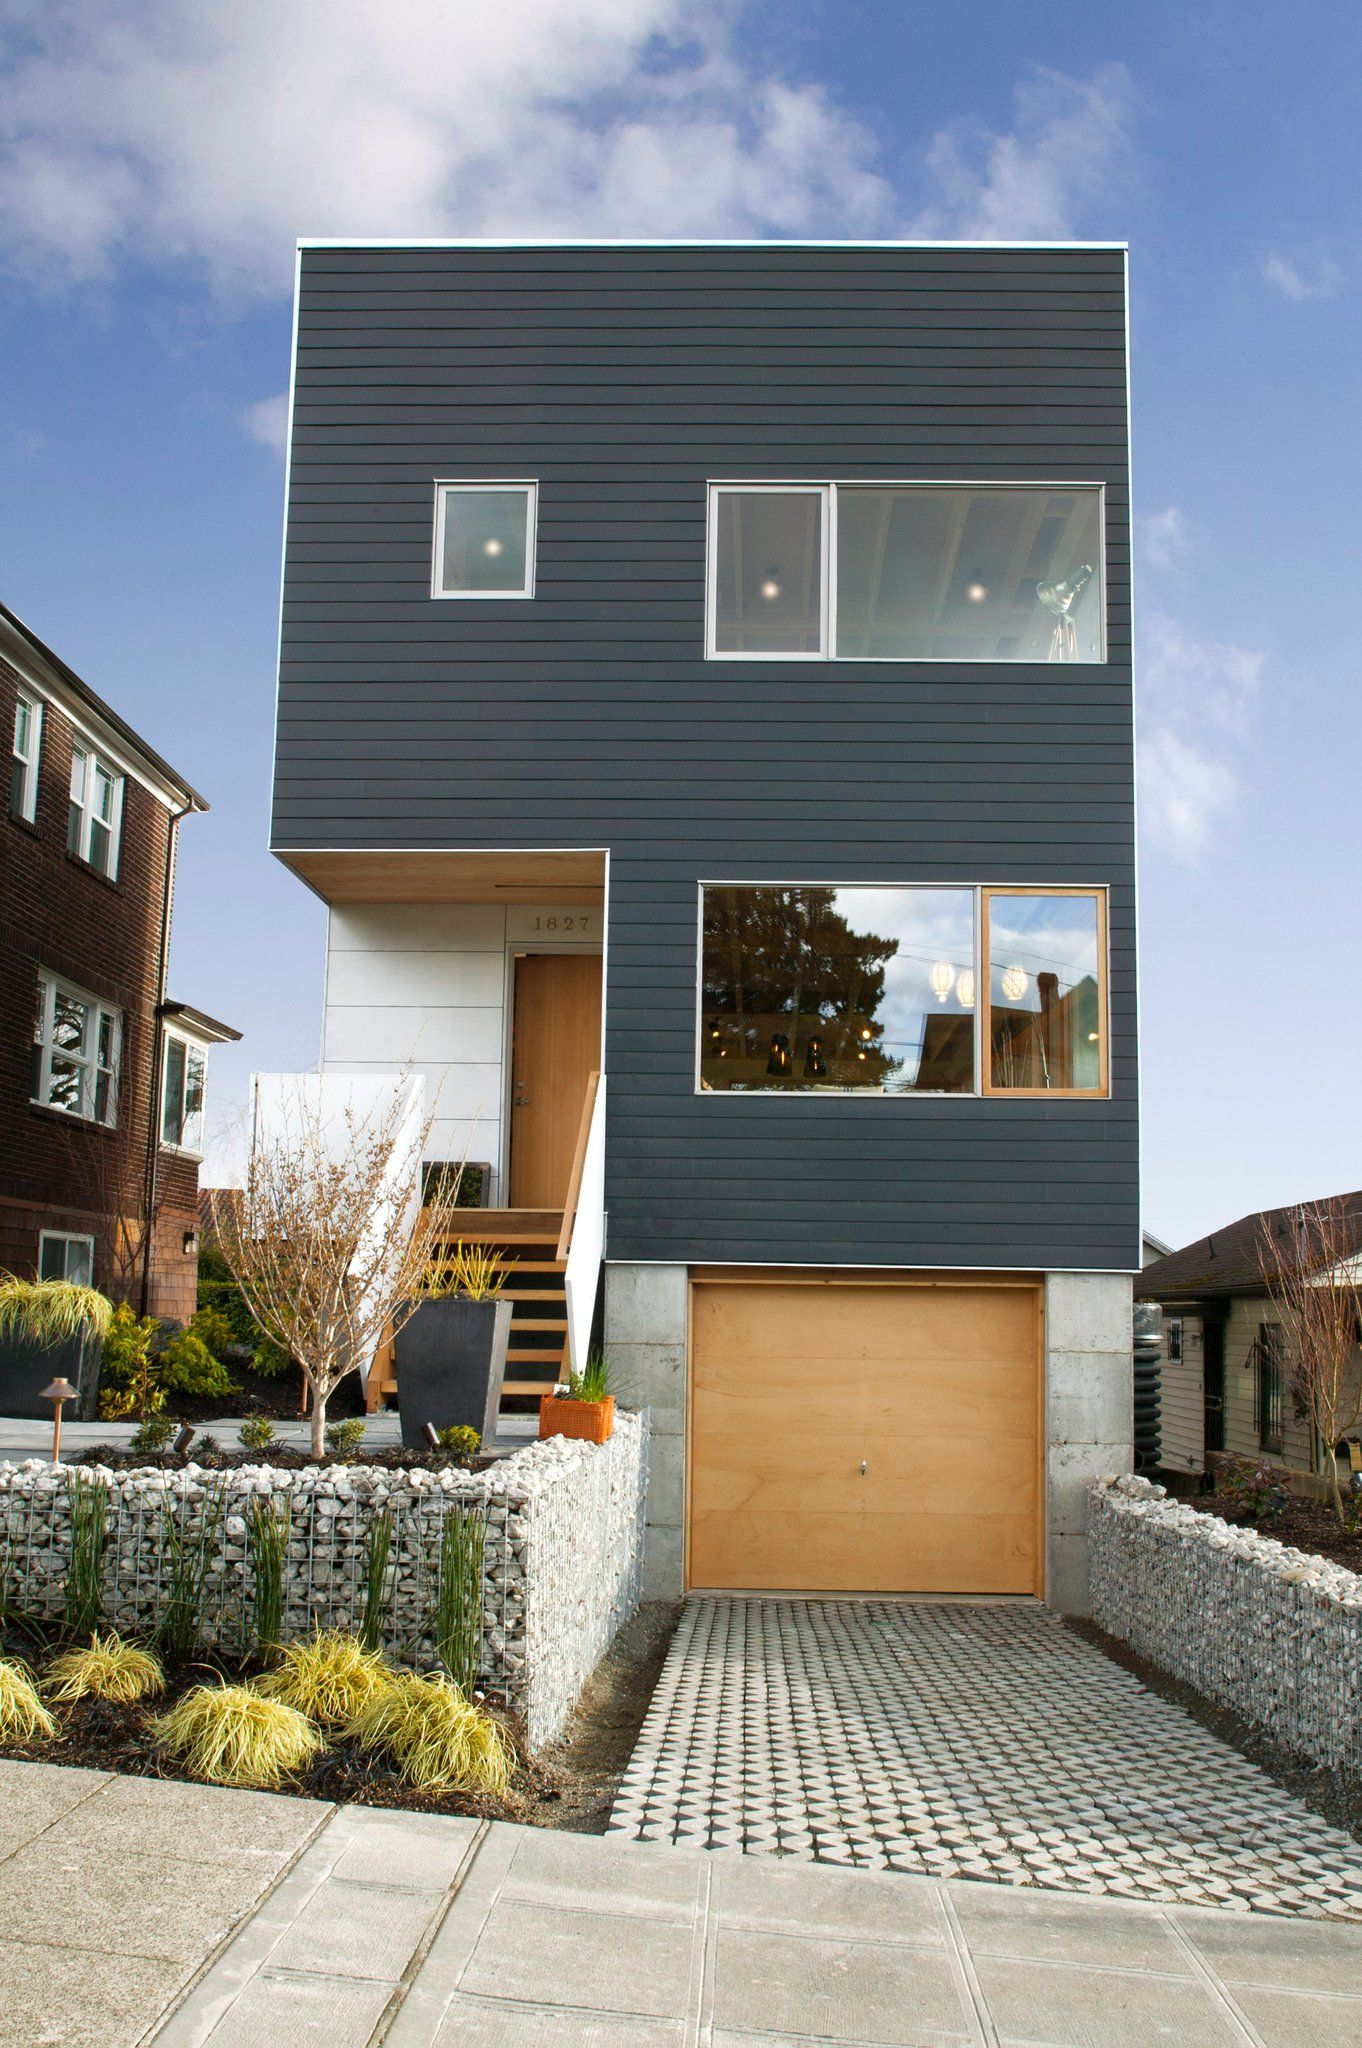 1000+ images about Modern Narrow Houses on Pinterest - ^